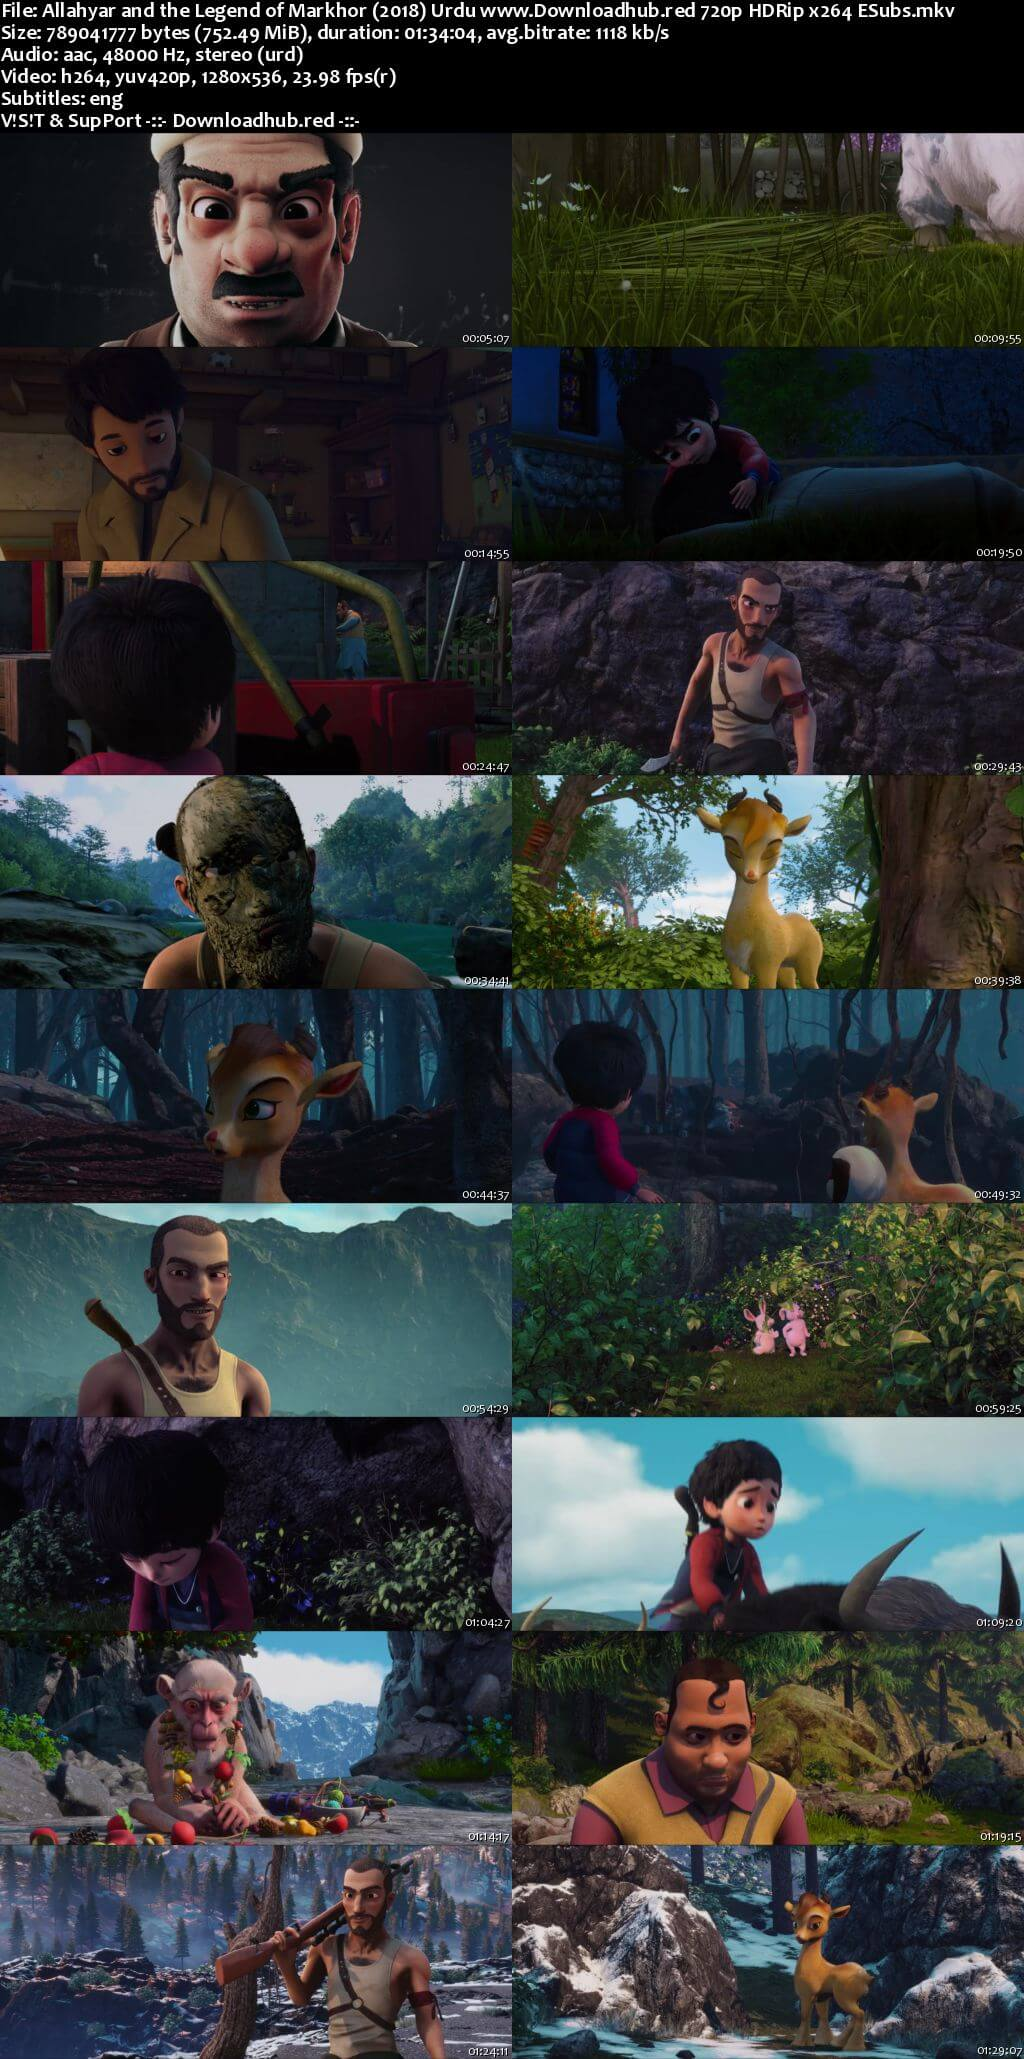 Allahyar and the Legend of Markhor 2018 Urdu 720p HDRip ESubs